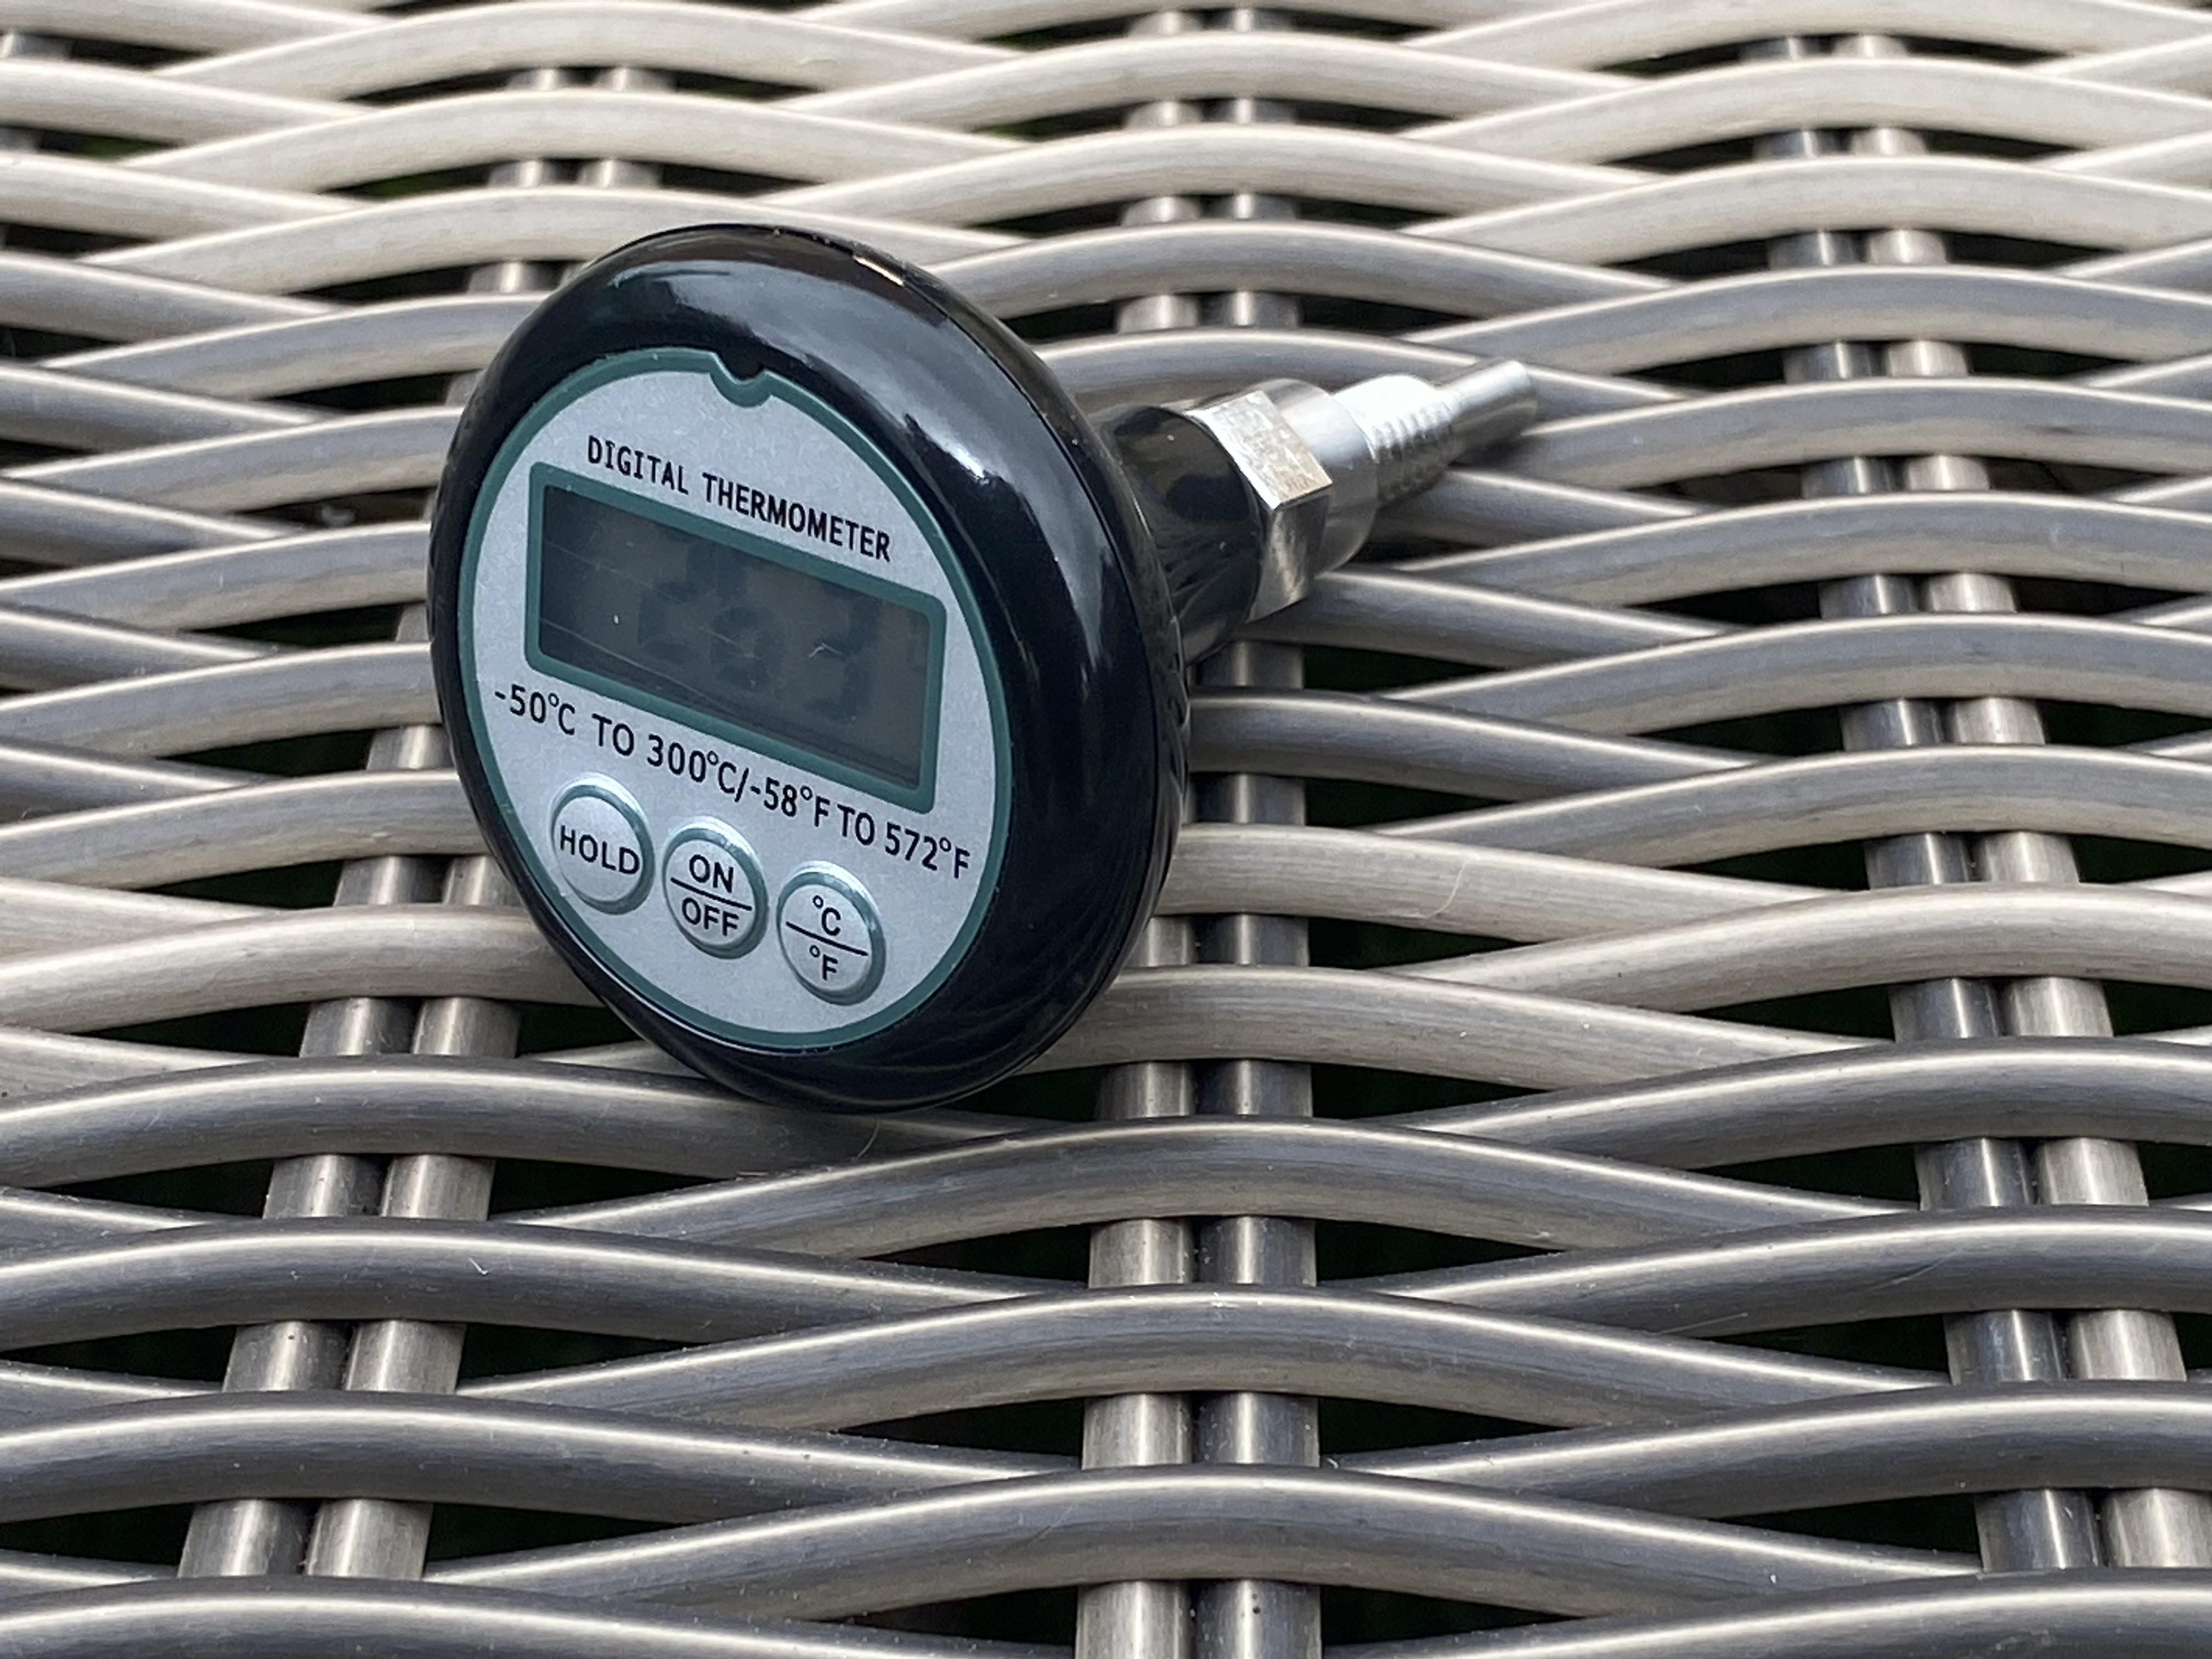 E61 Group thermometer